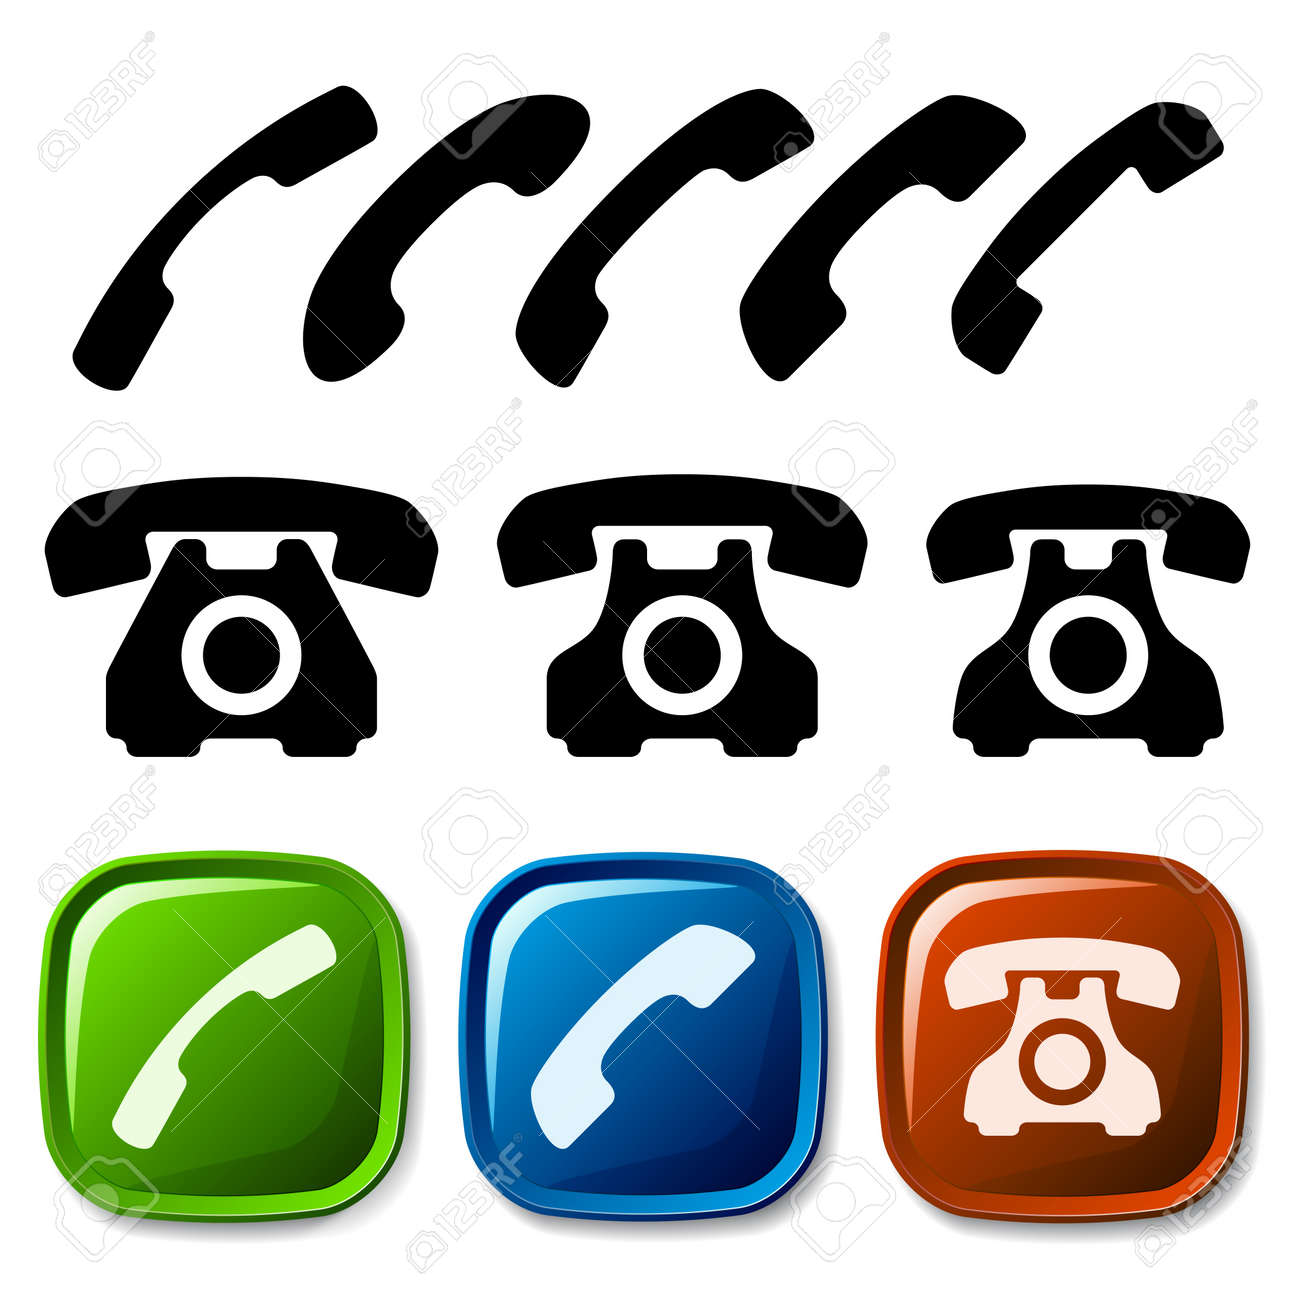 vector old phone icons Stock Vector - 11564722